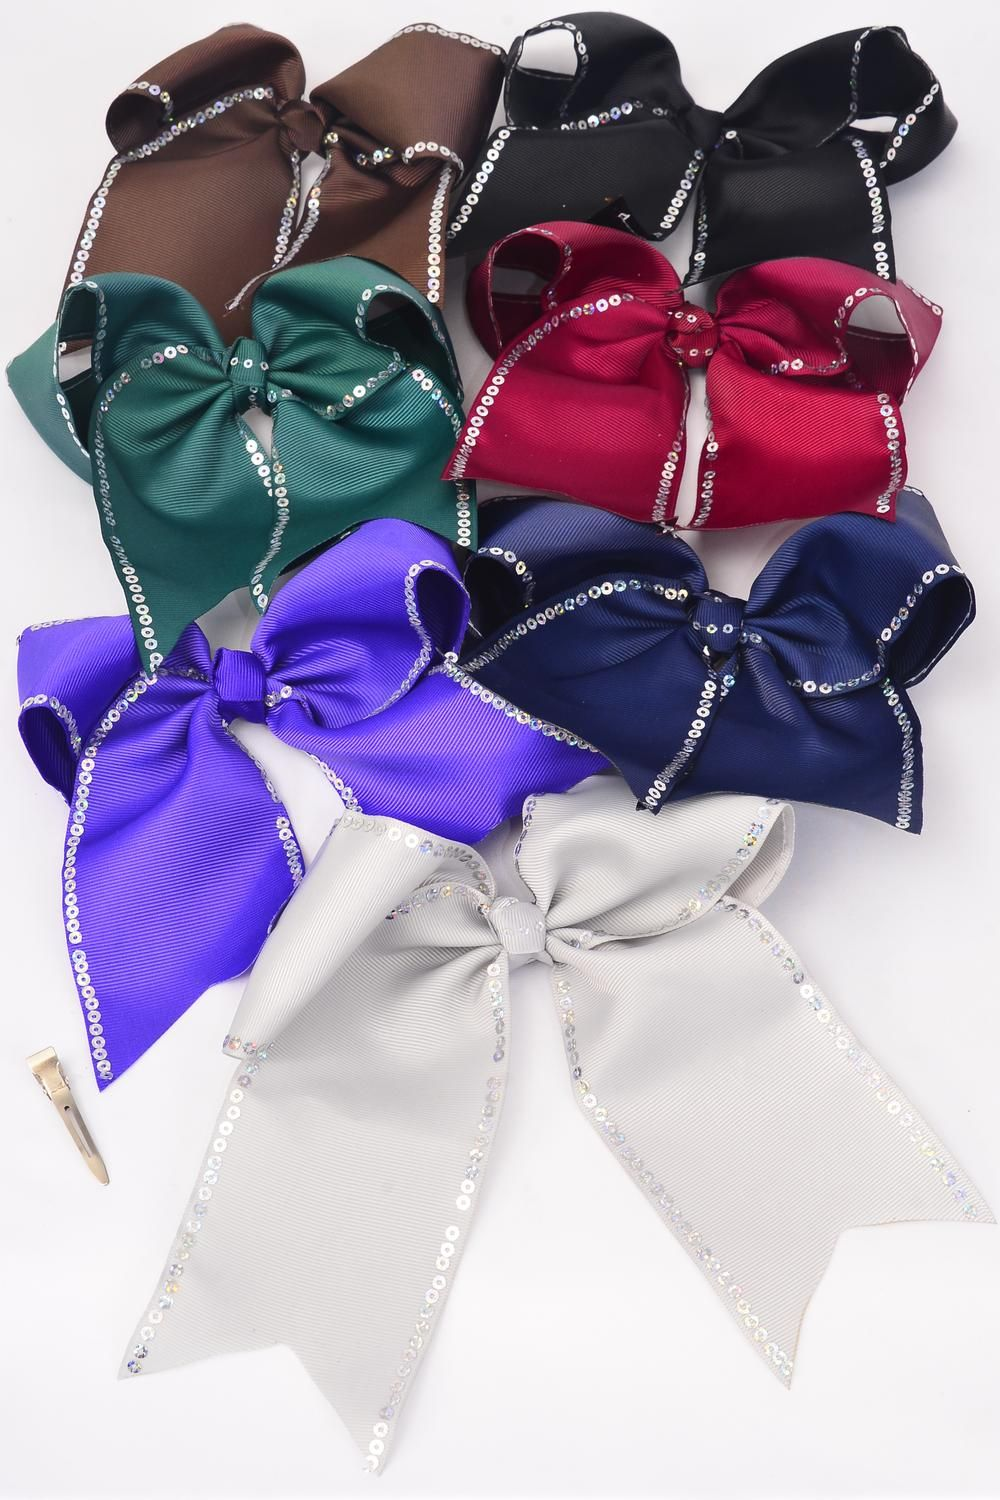 "Hair Bow Extra Jumbo Long Tail Sequin Cheer Bow Type Grosgrain Bow-tie Dark Multi/DZ **Dark Multi** Alligator Clip, Size-7""x 6"" Wide,2 Black,2 Navy,2 Burg,2 Hunter Green,2 Brown,1 Gray,1 Purple Mix,Clip Strip & UPC Code"